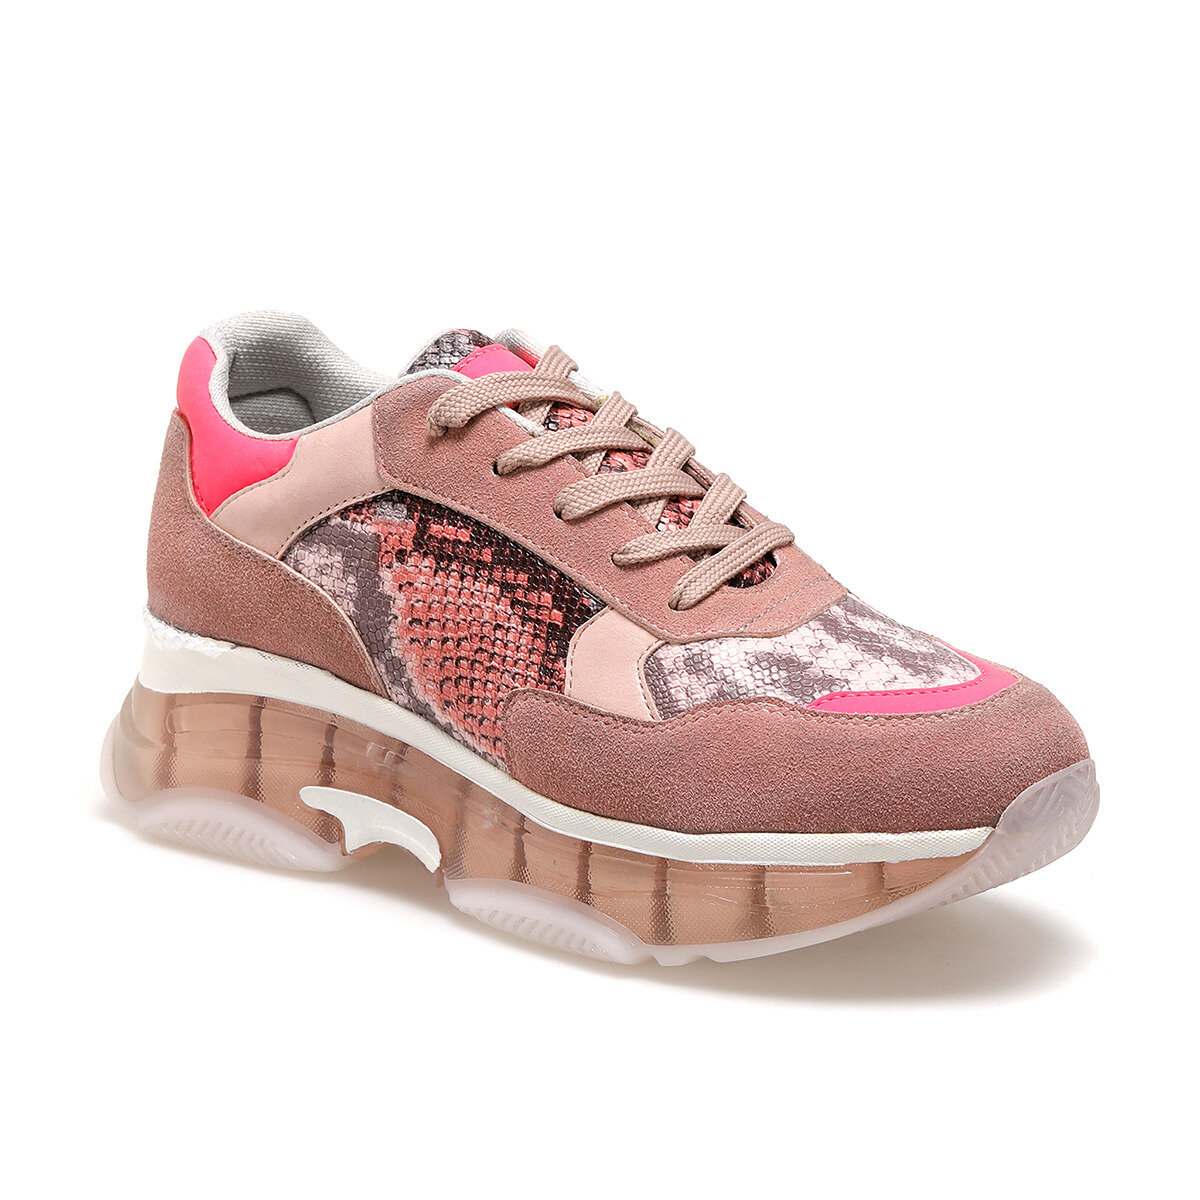 FLO Women Sneaker Shoes Women Casual Sneakers Spring Autumn Sneakers Breathable Women Shoes Lace Up Female Comrfortable Platform BUTIGO 20S-083